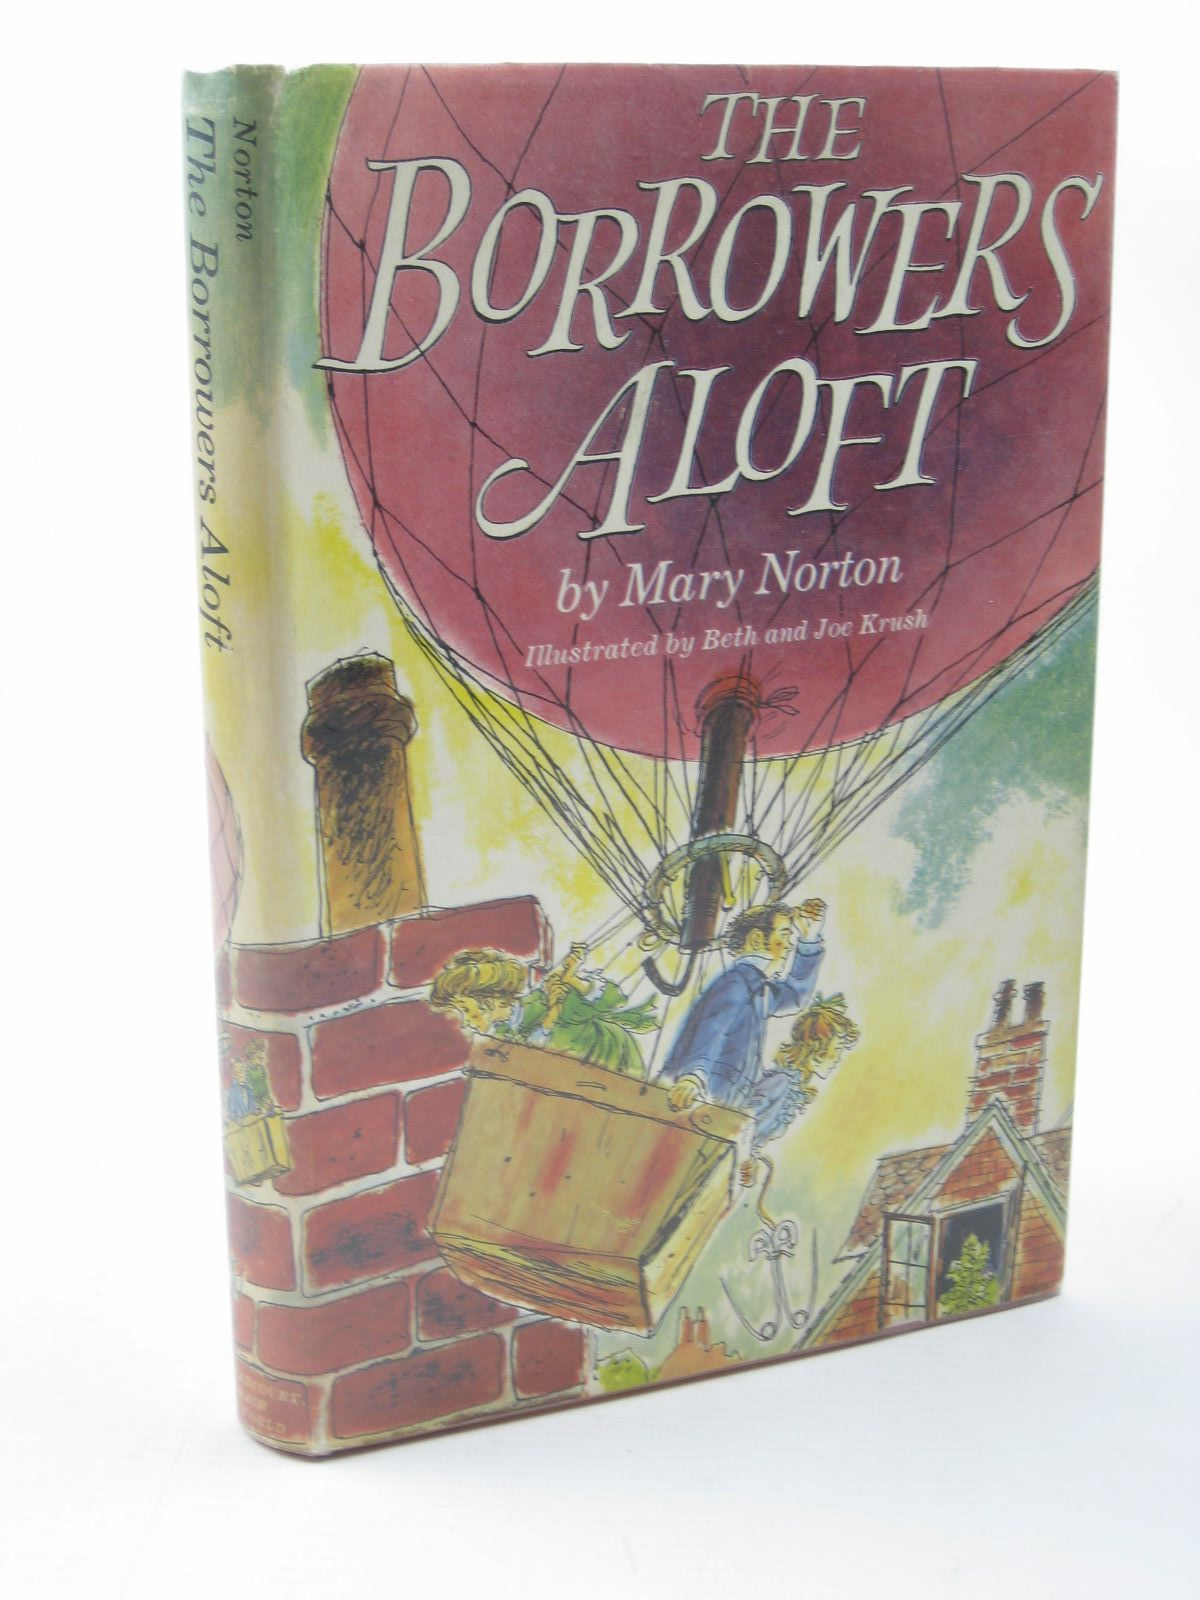 Photo of THE BORROWERS ALOFT written by Norton, Mary illustrated by Krush, Beth<br />Krush, Joe published by Harcourt, Brace & Company (STOCK CODE: 1312716)  for sale by Stella & Rose's Books